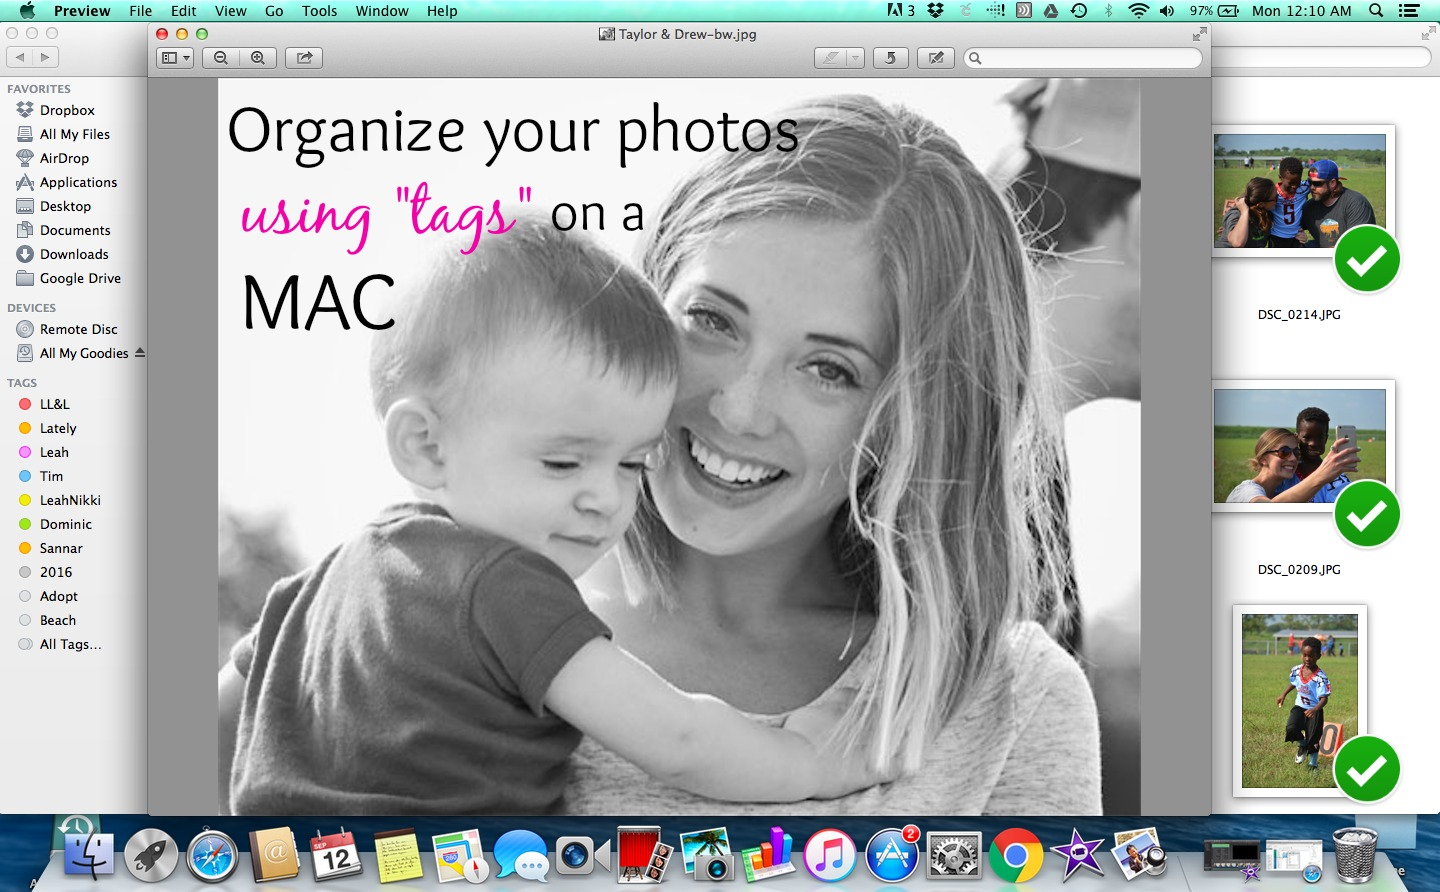 organize-your-photos-using-tags-on-a-mac